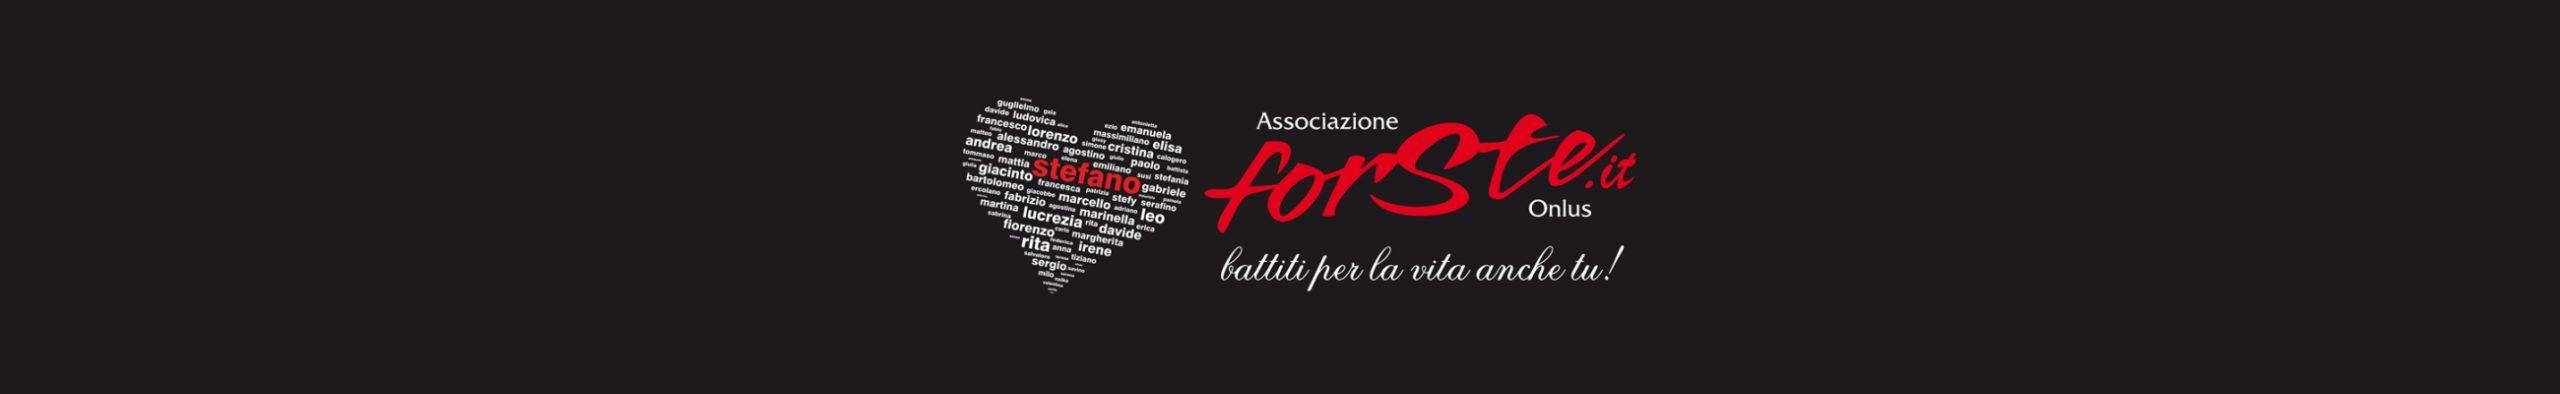 associazione forste scaled